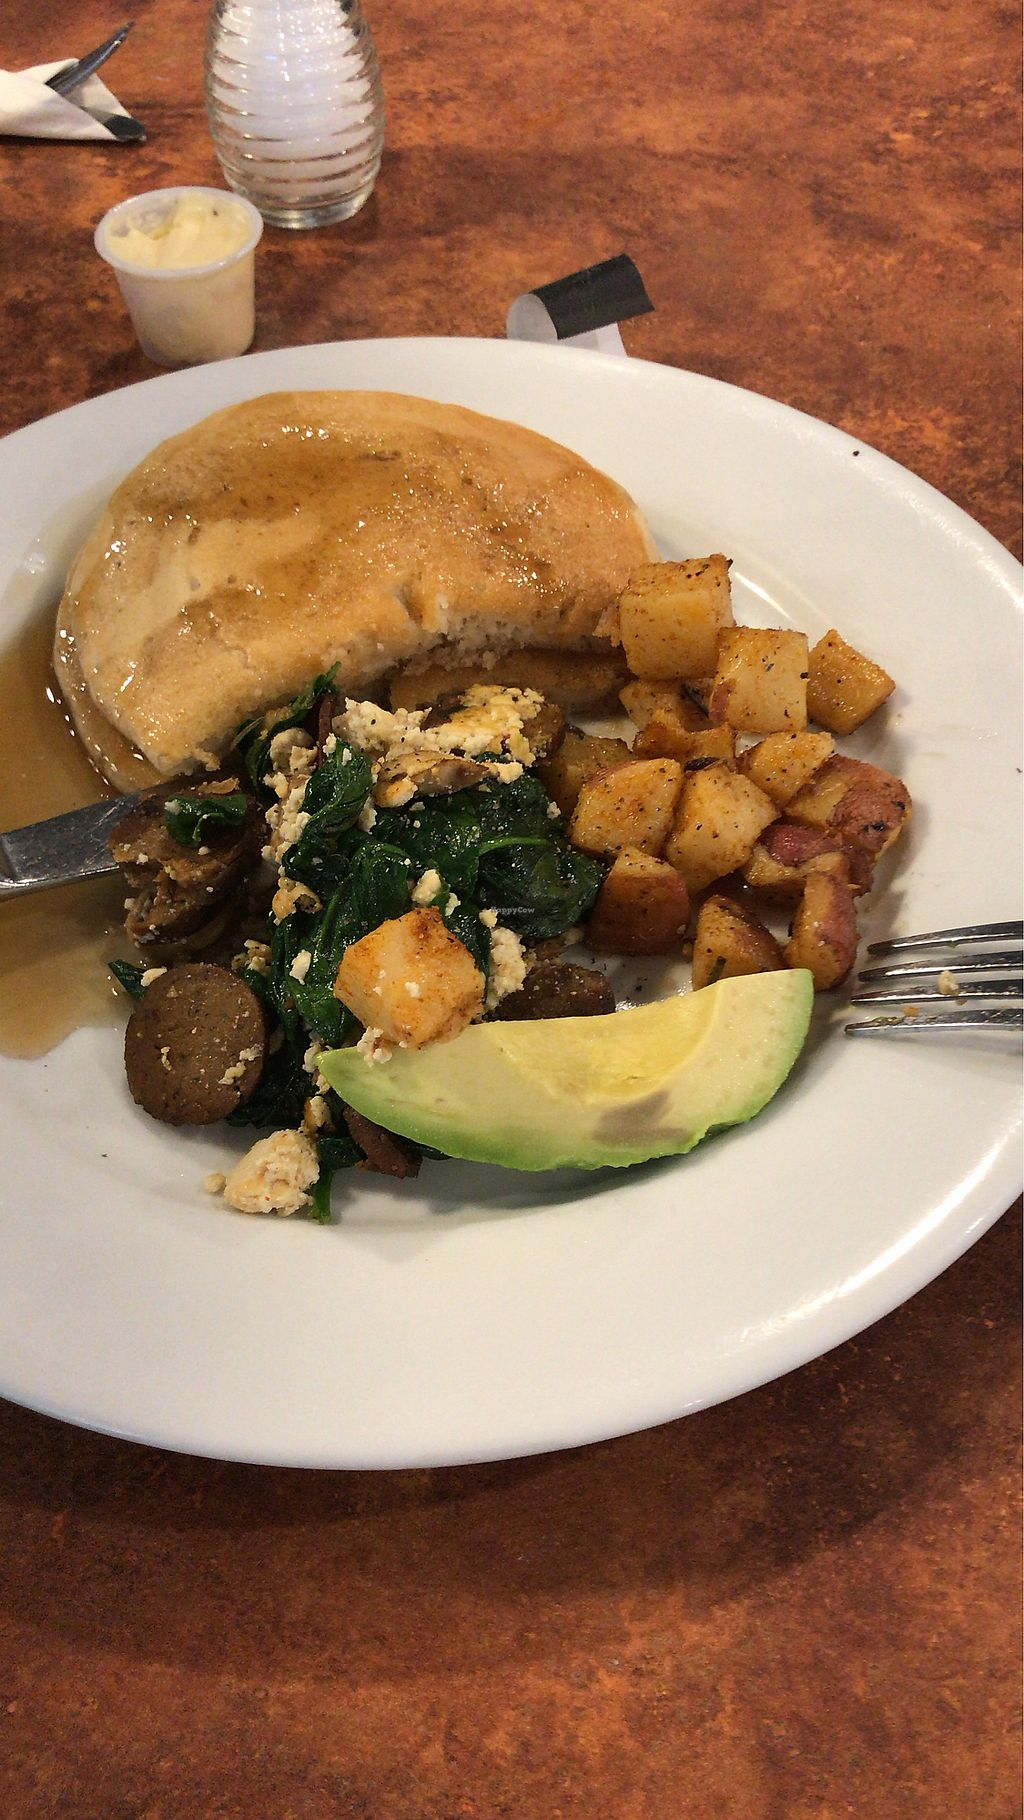 "Photo of Maywood Pancake House  by <a href=""/members/profile/Lucipurrr"">Lucipurrr</a> <br/>Vegan pancakes & Vegan tofu scramble called Popeye with vegan sausage <br/> April 15, 2018  - <a href='/contact/abuse/image/58273/386336'>Report</a>"